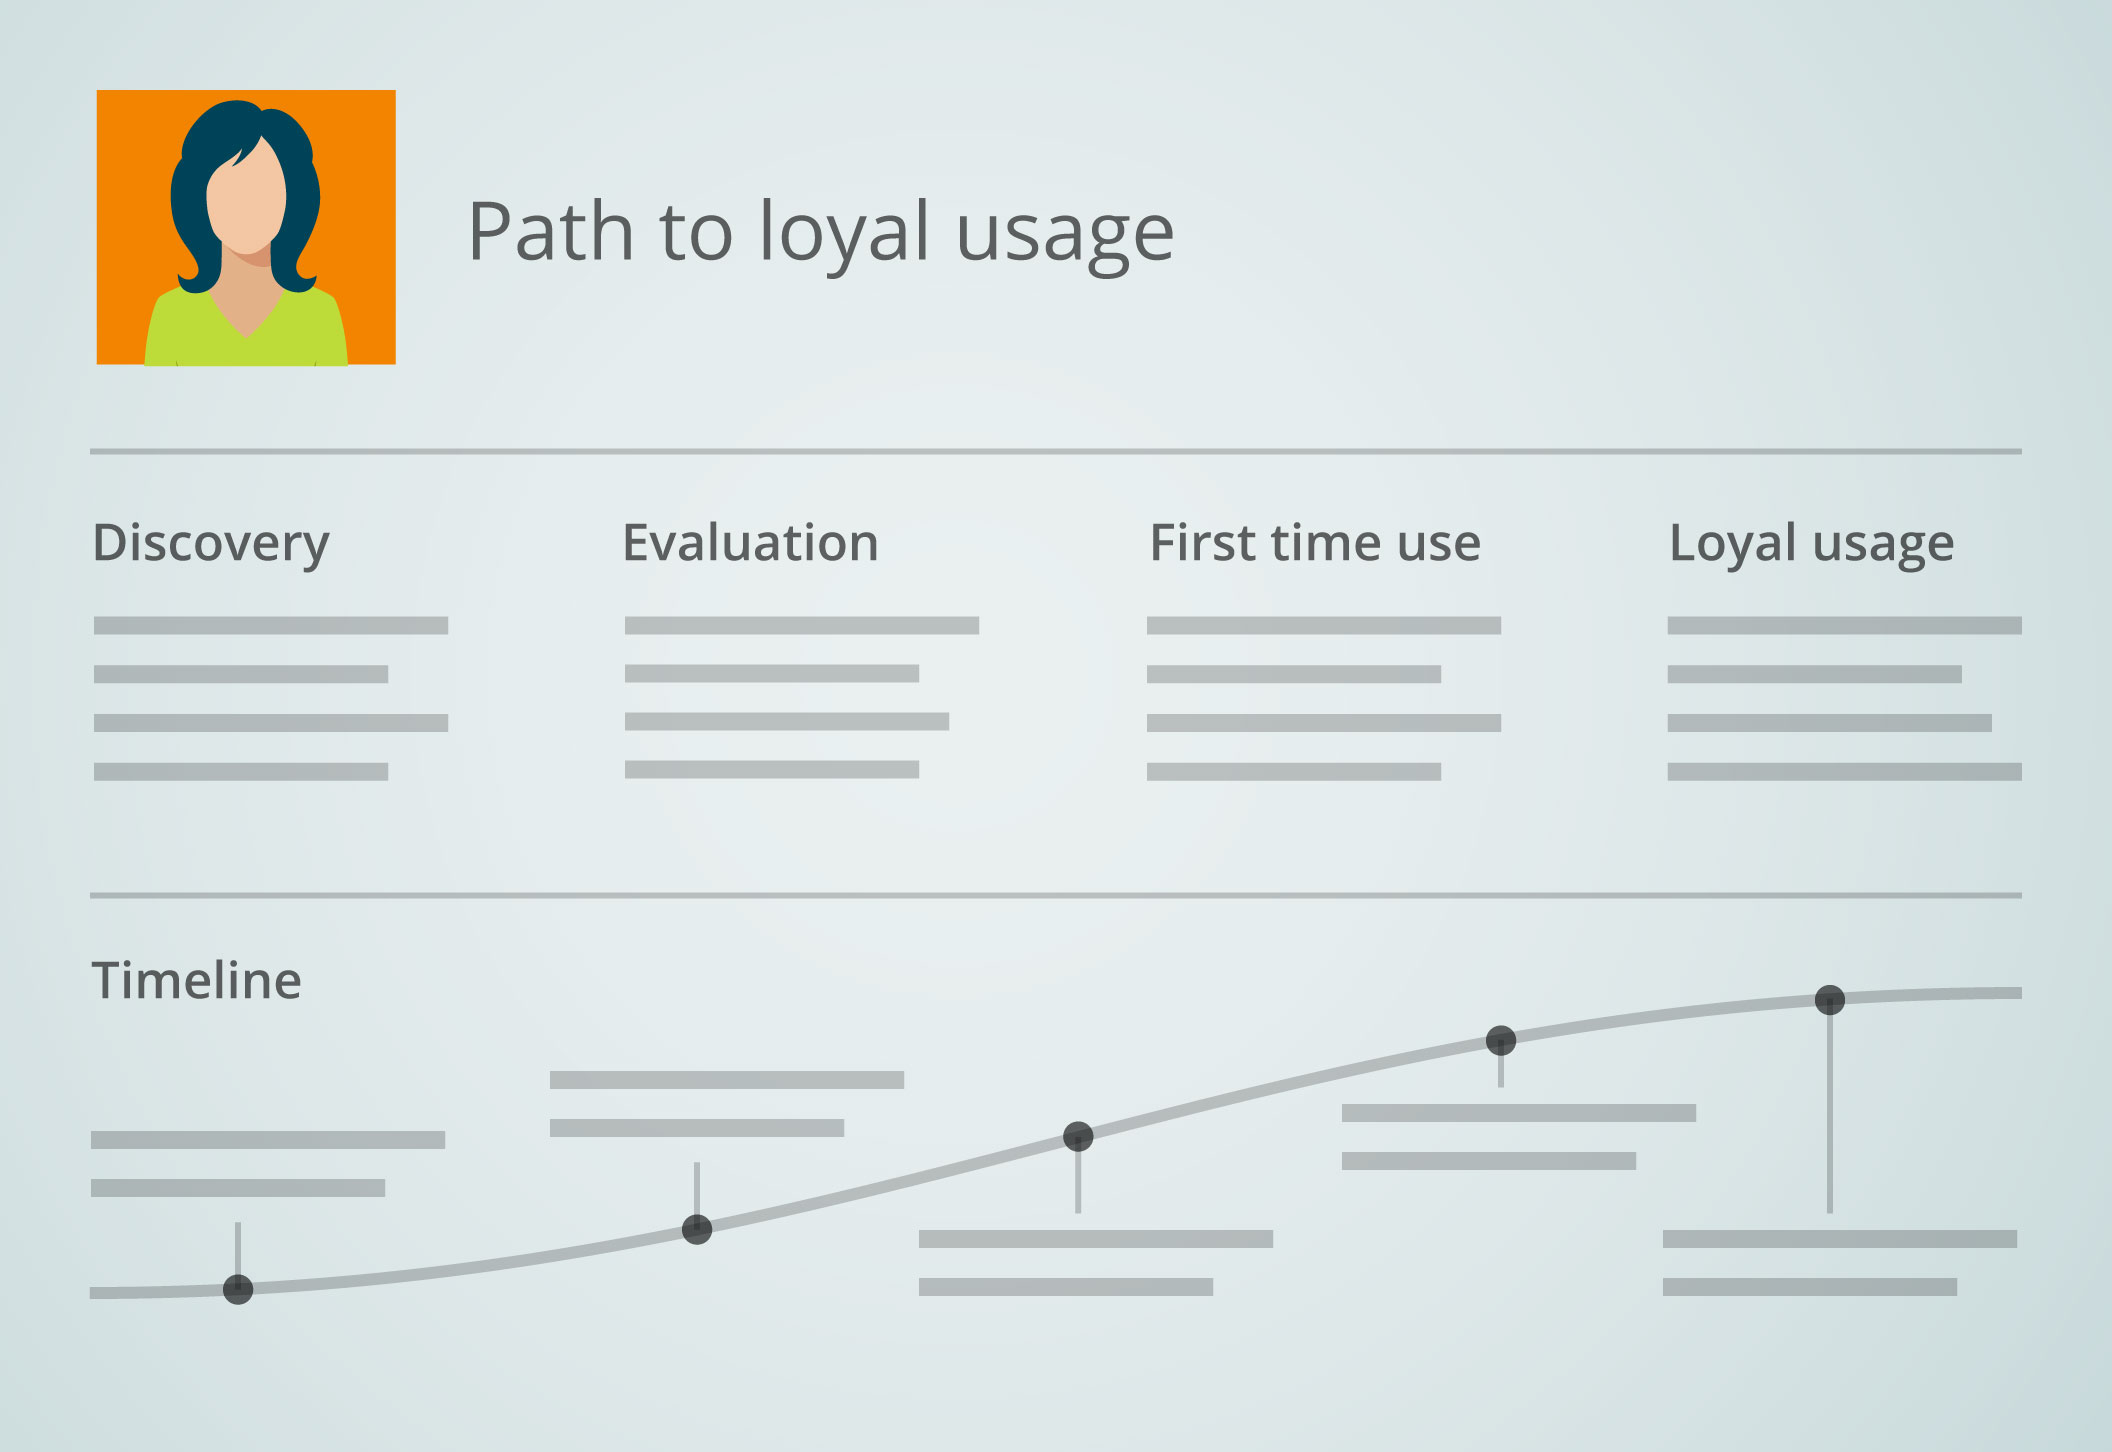 Defining the user's journey